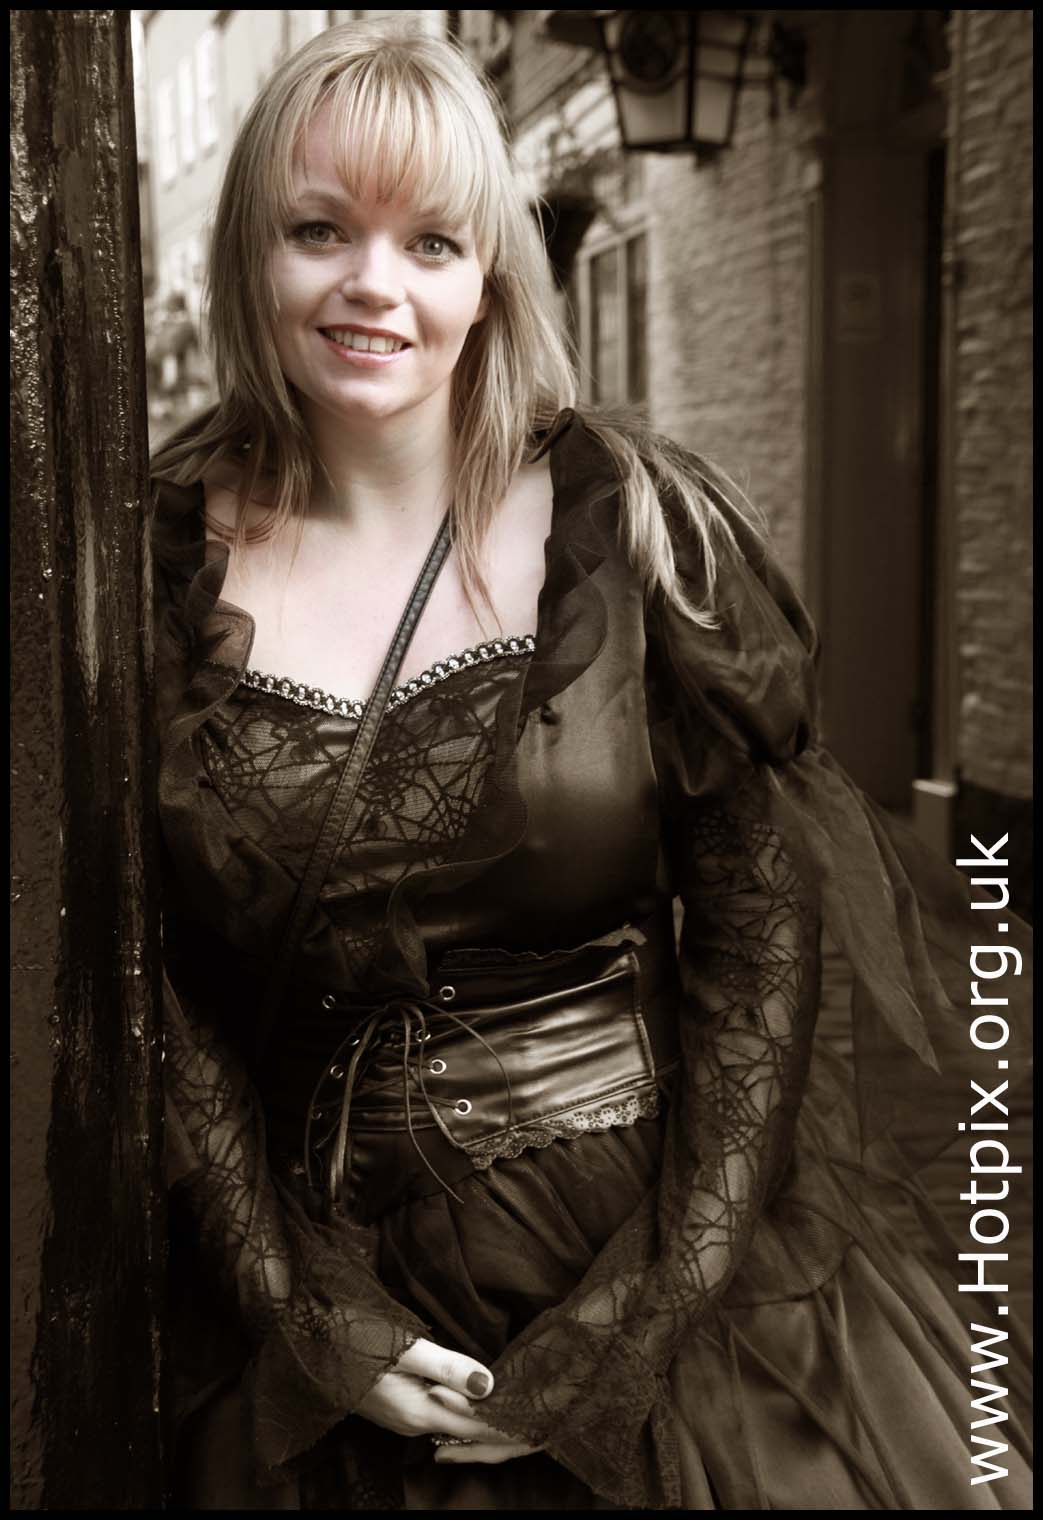 black,white,sepia,lady,woman,blond,female,girl,dress,goth,leather,lace,lacy,face,portrait,sexy,bodice,Tony,Smith,Hotpix,tonysmith,tonysmithotpix,tonysmithhotpix,selectivecolour,selective,colour,color,Spooky,Halloween,ghost,ghoul,ghouls,October,season,peroxide,chick,teen,teenager,teenage,middle,age,mature,milf,milfs,Whitby,North,East,Yorks,Yorkshire,sea,side,seaside,port,festival,gothic,weekend,event,@hotpixuk